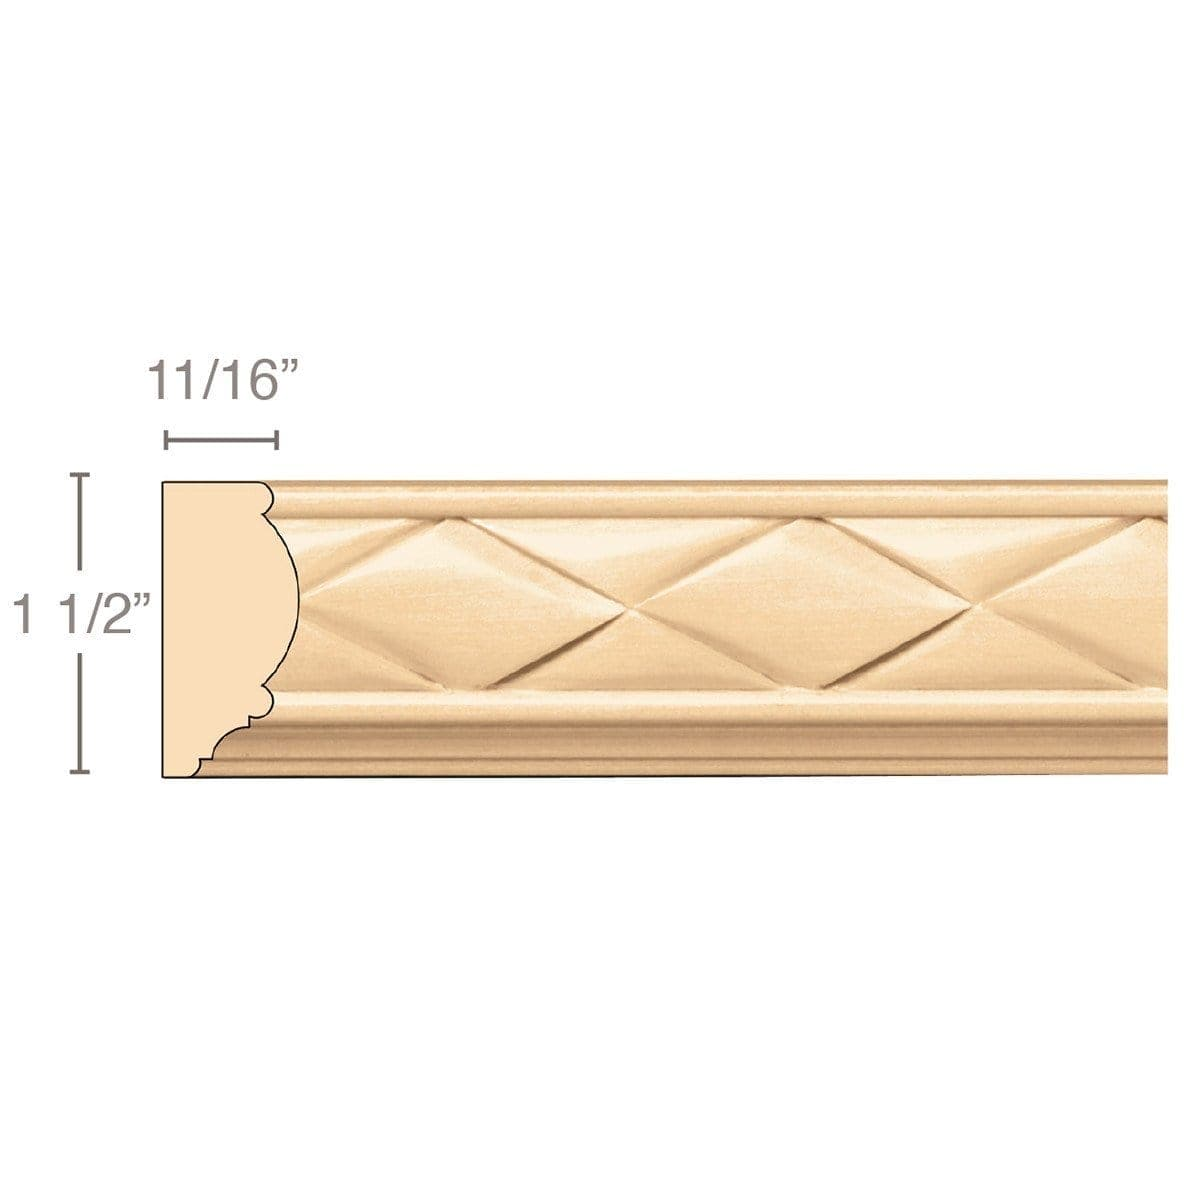 Woven Panel Mould (Repeats 1 3/4), 1 1/2''w x 11/16''d x 8' length, Resin is priced per 8' length